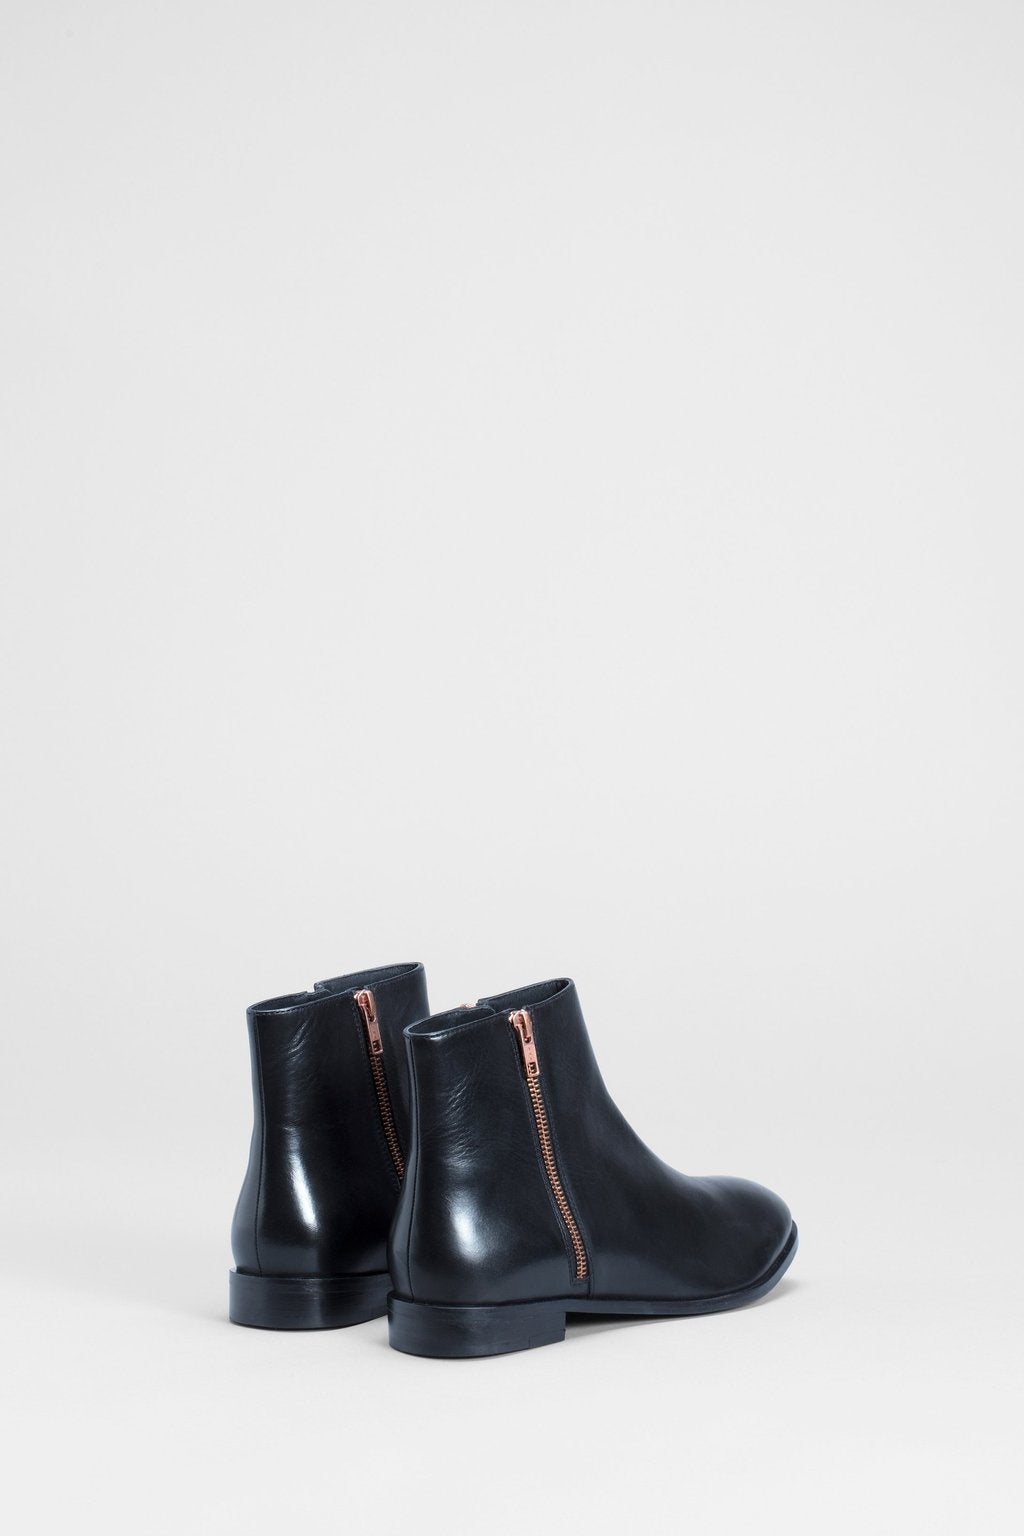 Elk W20 Freja Boot Black